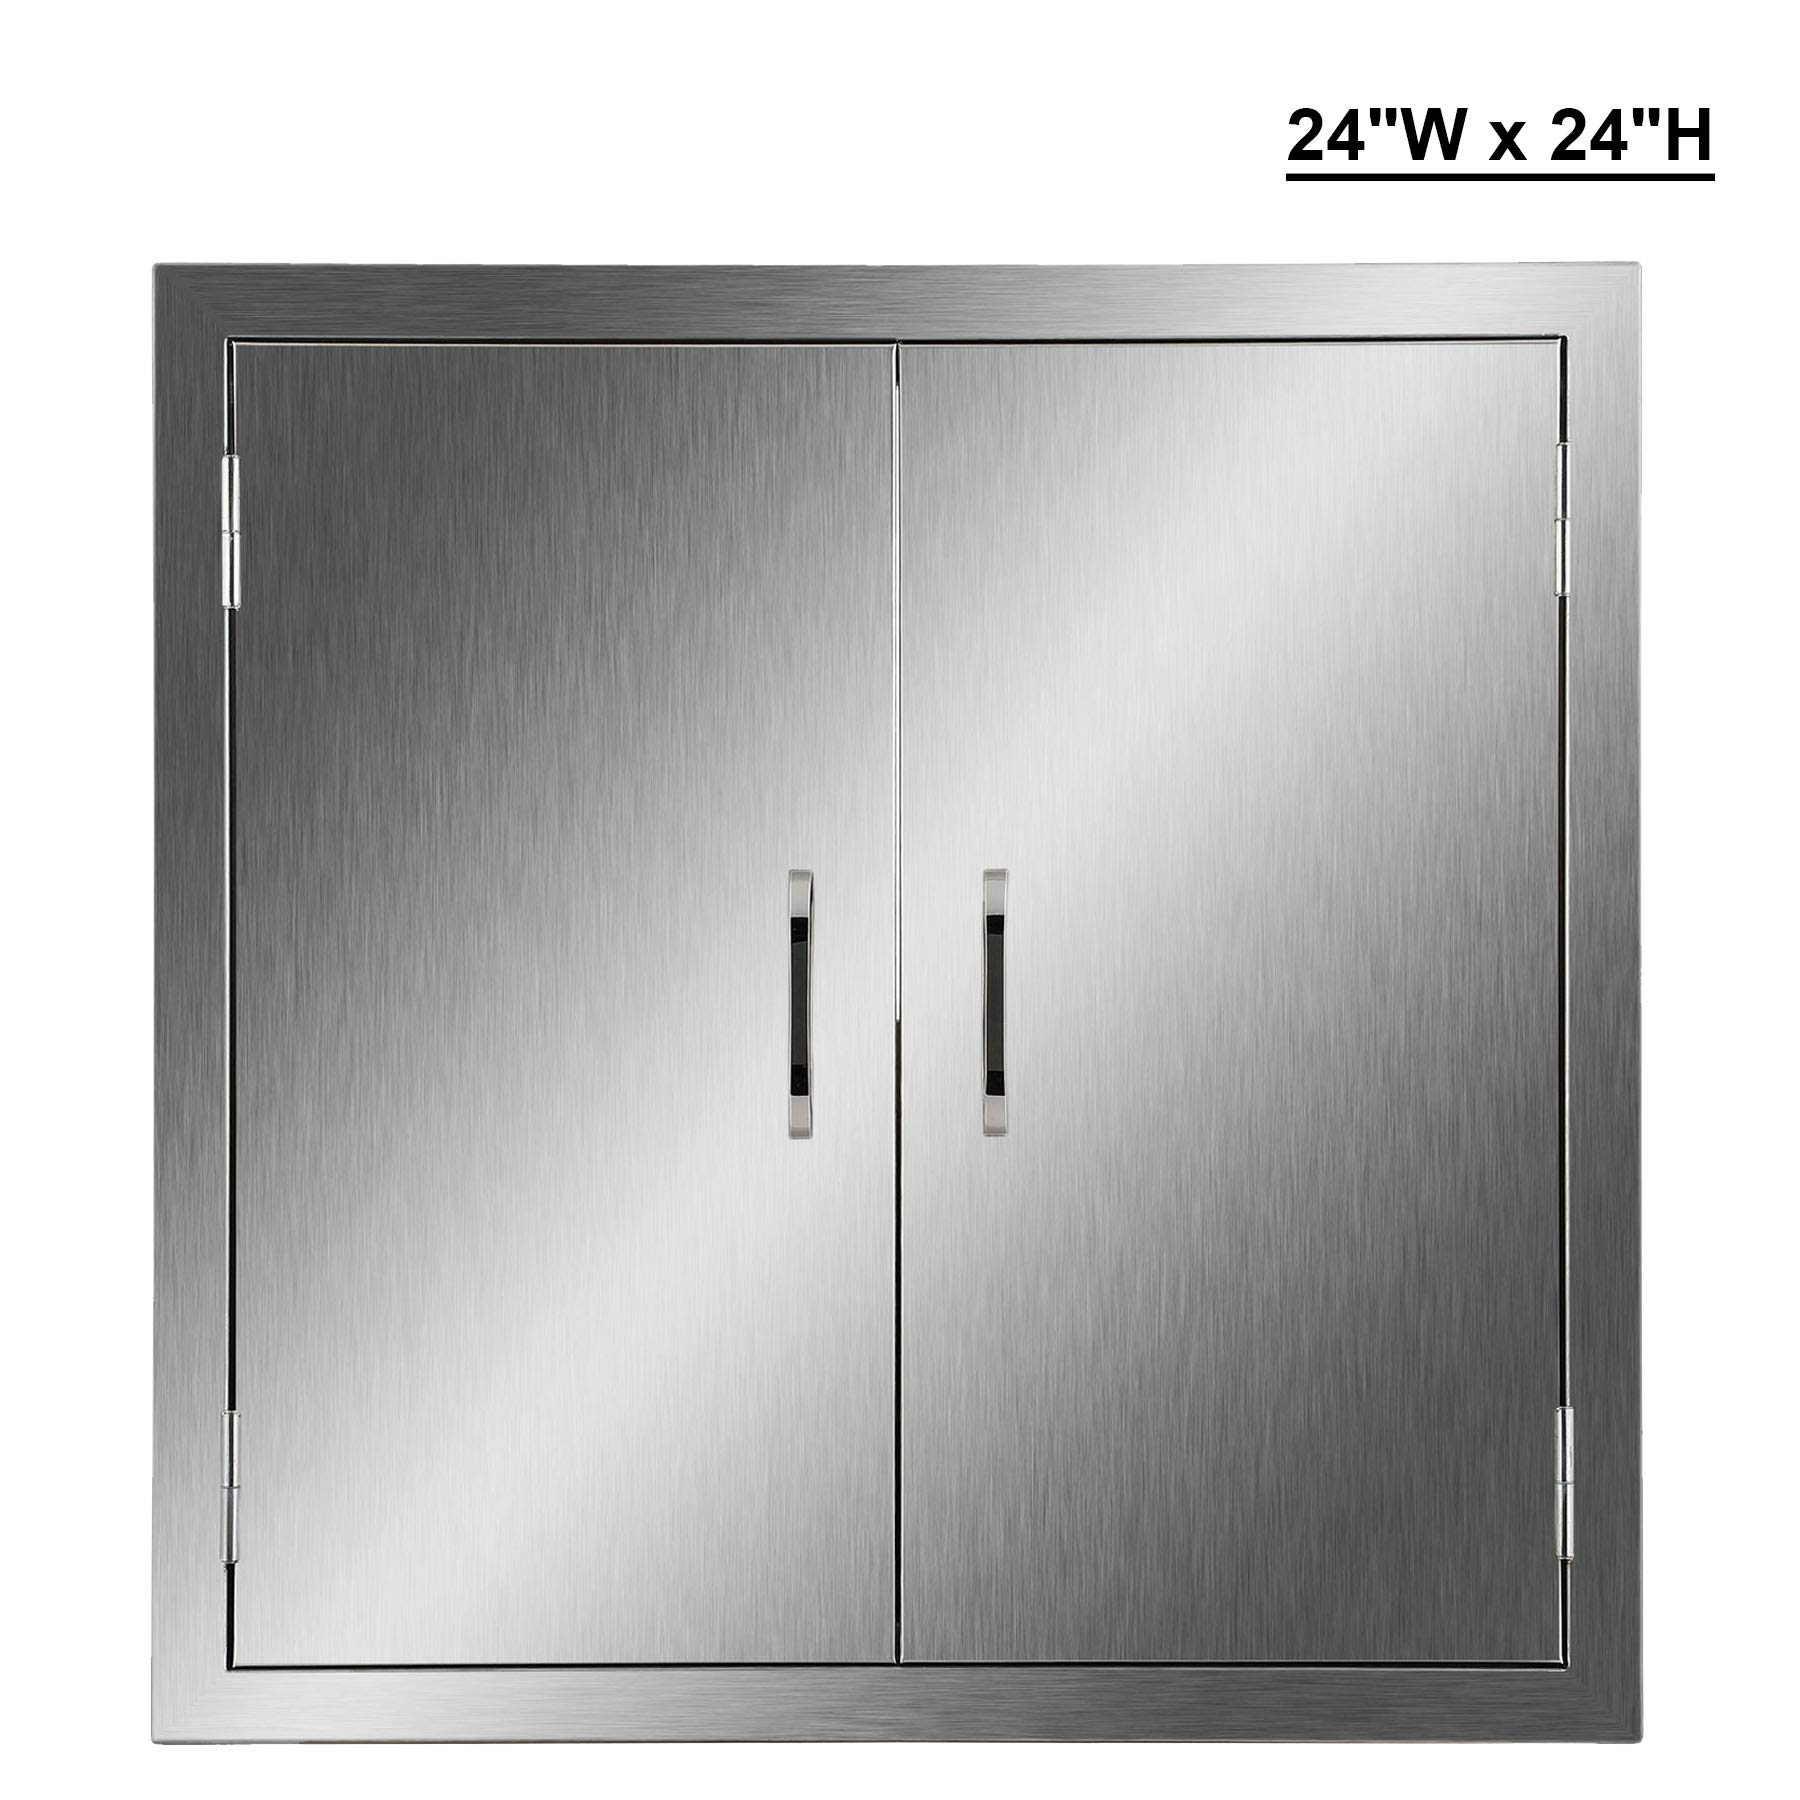 CO-Z Outdoor Kitchen Doors, 304 Brushed Stainless Steel Double BBQ Access Doors for Outdoor Kitchen, Commercial BBQ Island, Grilling Station, Outside Cabinet, Barbeque Grill, Built-in (24'' W x 24'' H) by CO-Z